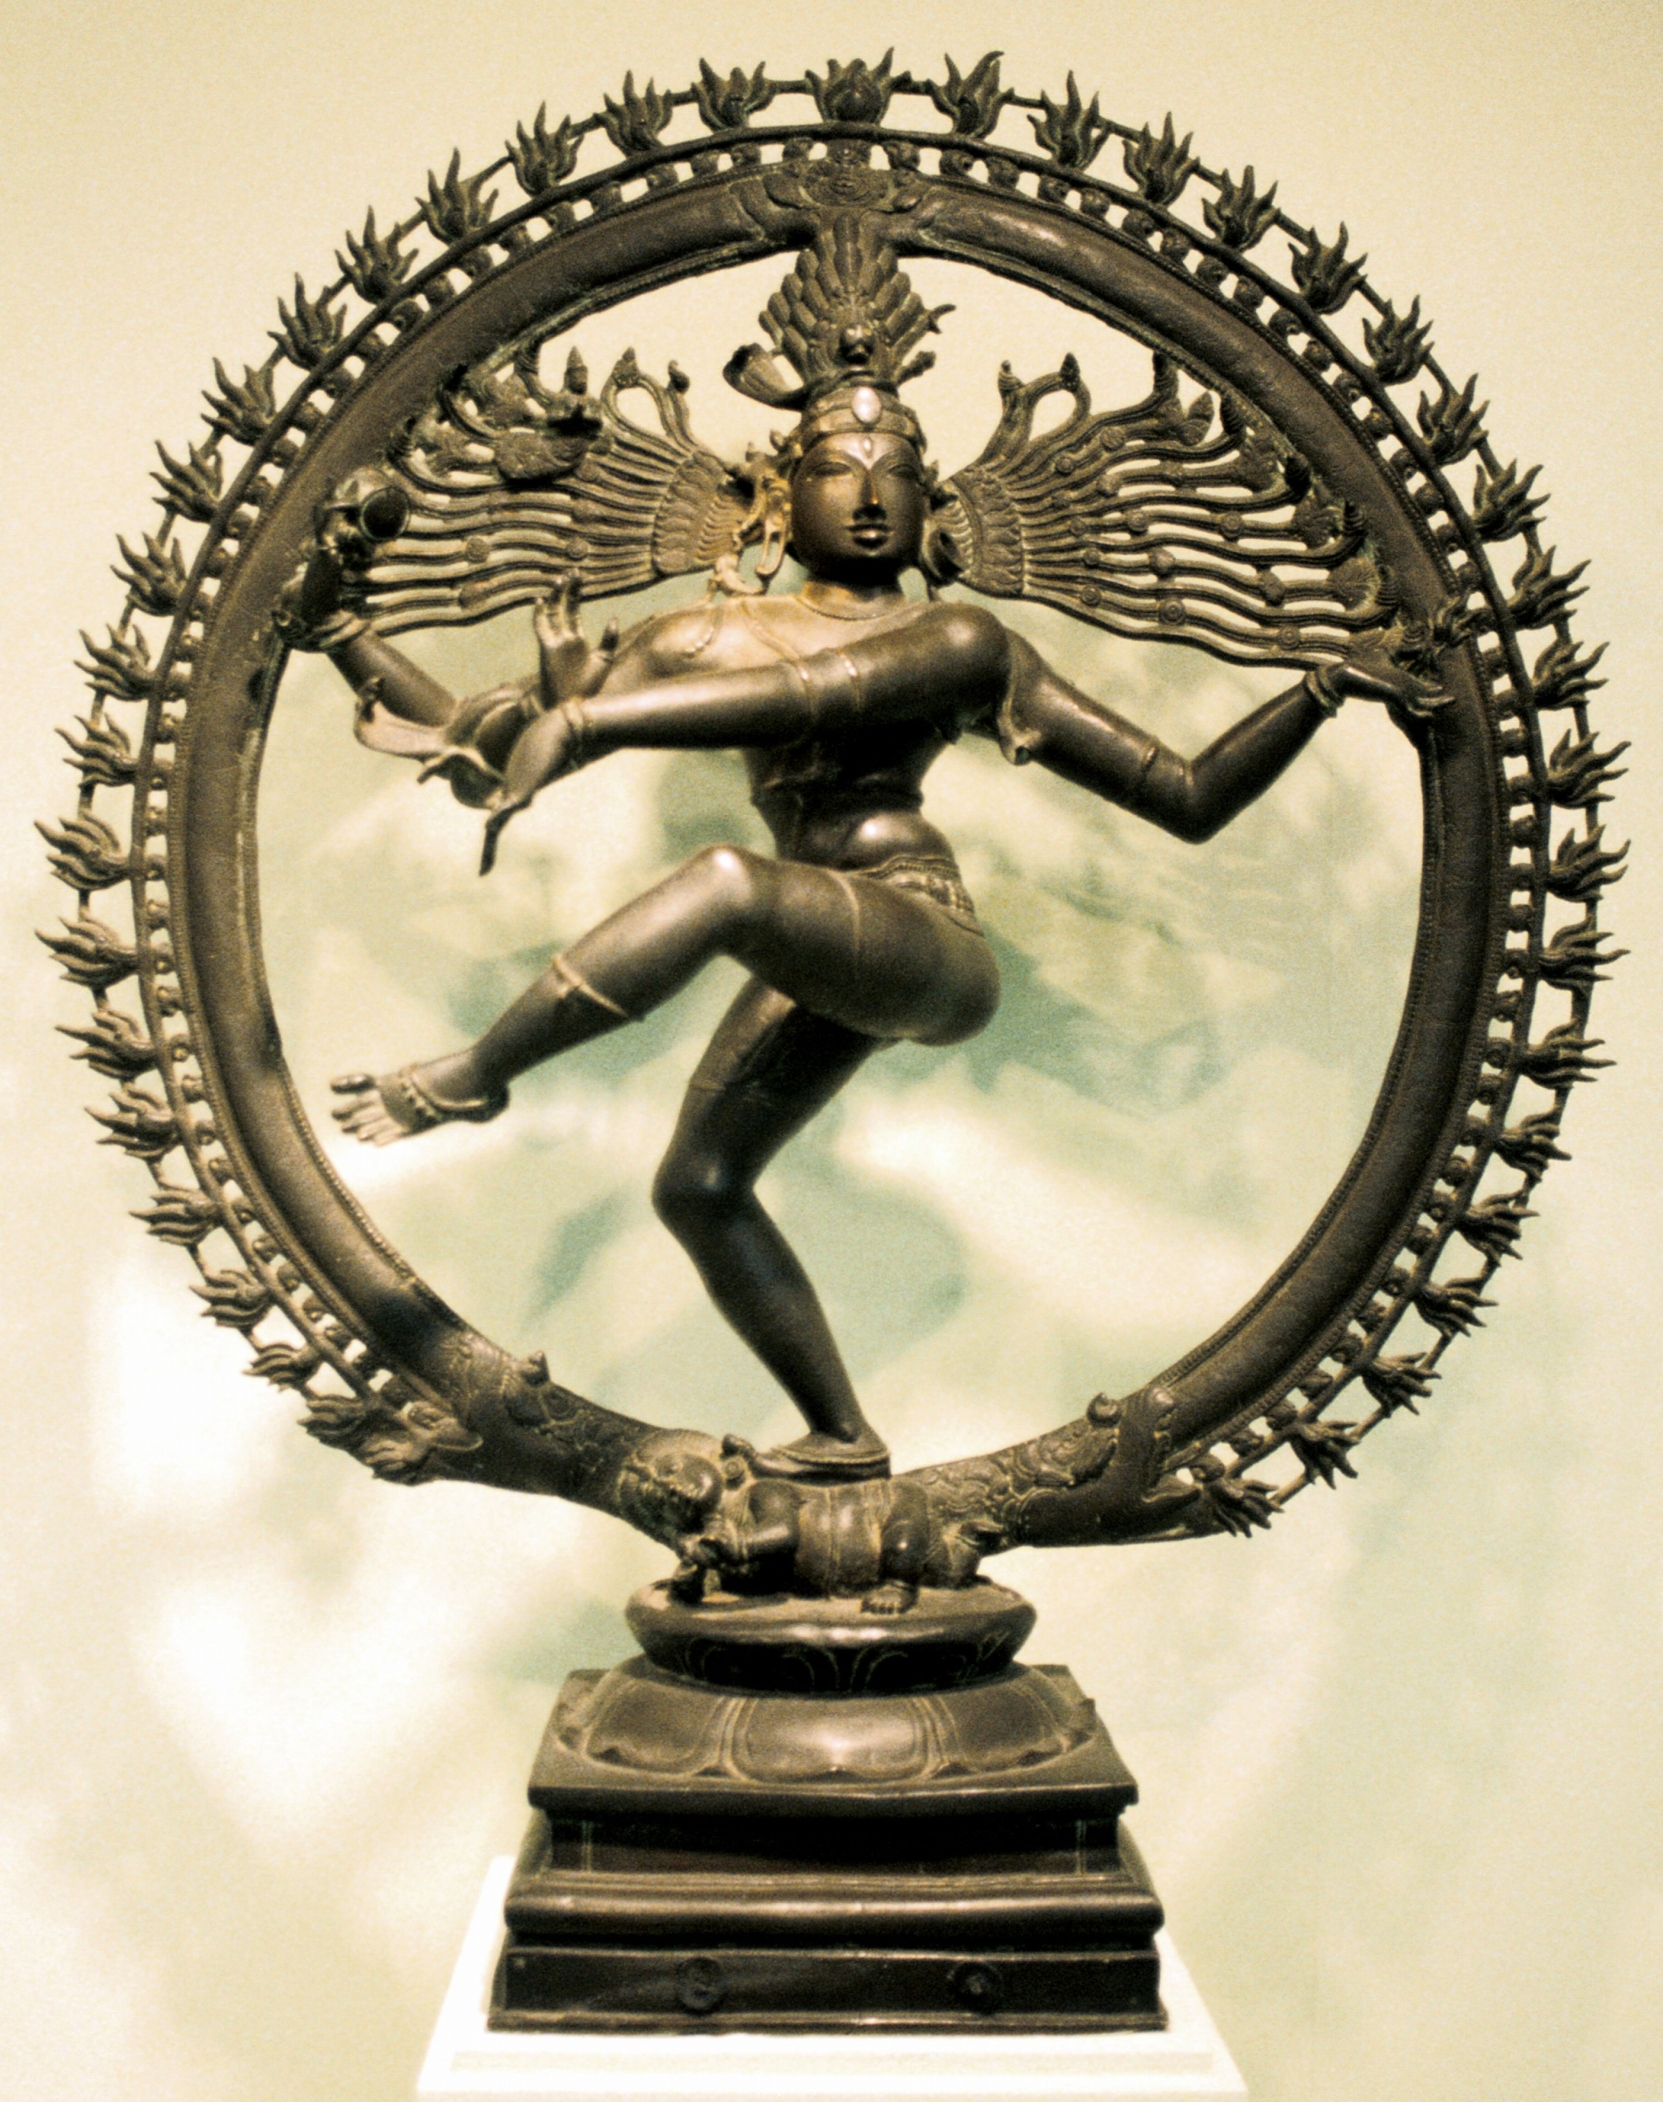 What Do Hindus Consider Sacred?